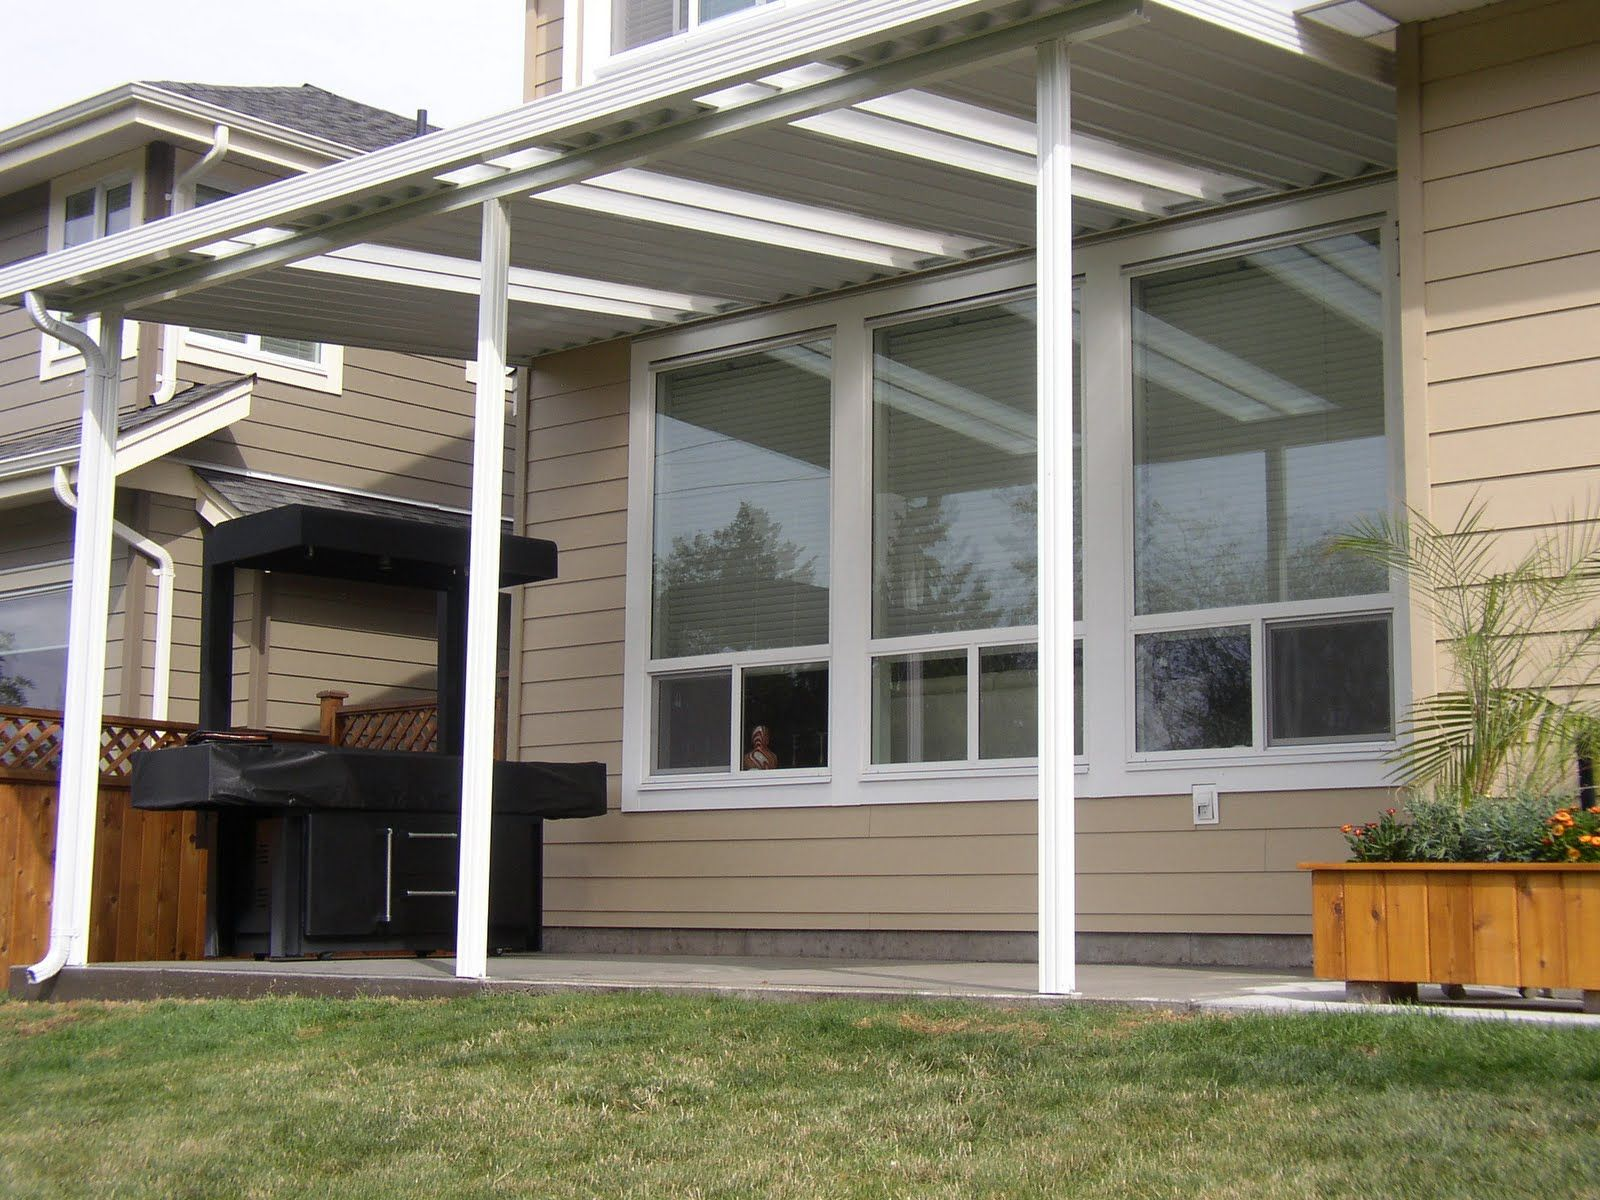 Great Installing Deck Awnings With Diy Retractable Awning For Homemade Outdoor The Best Relaxation Place